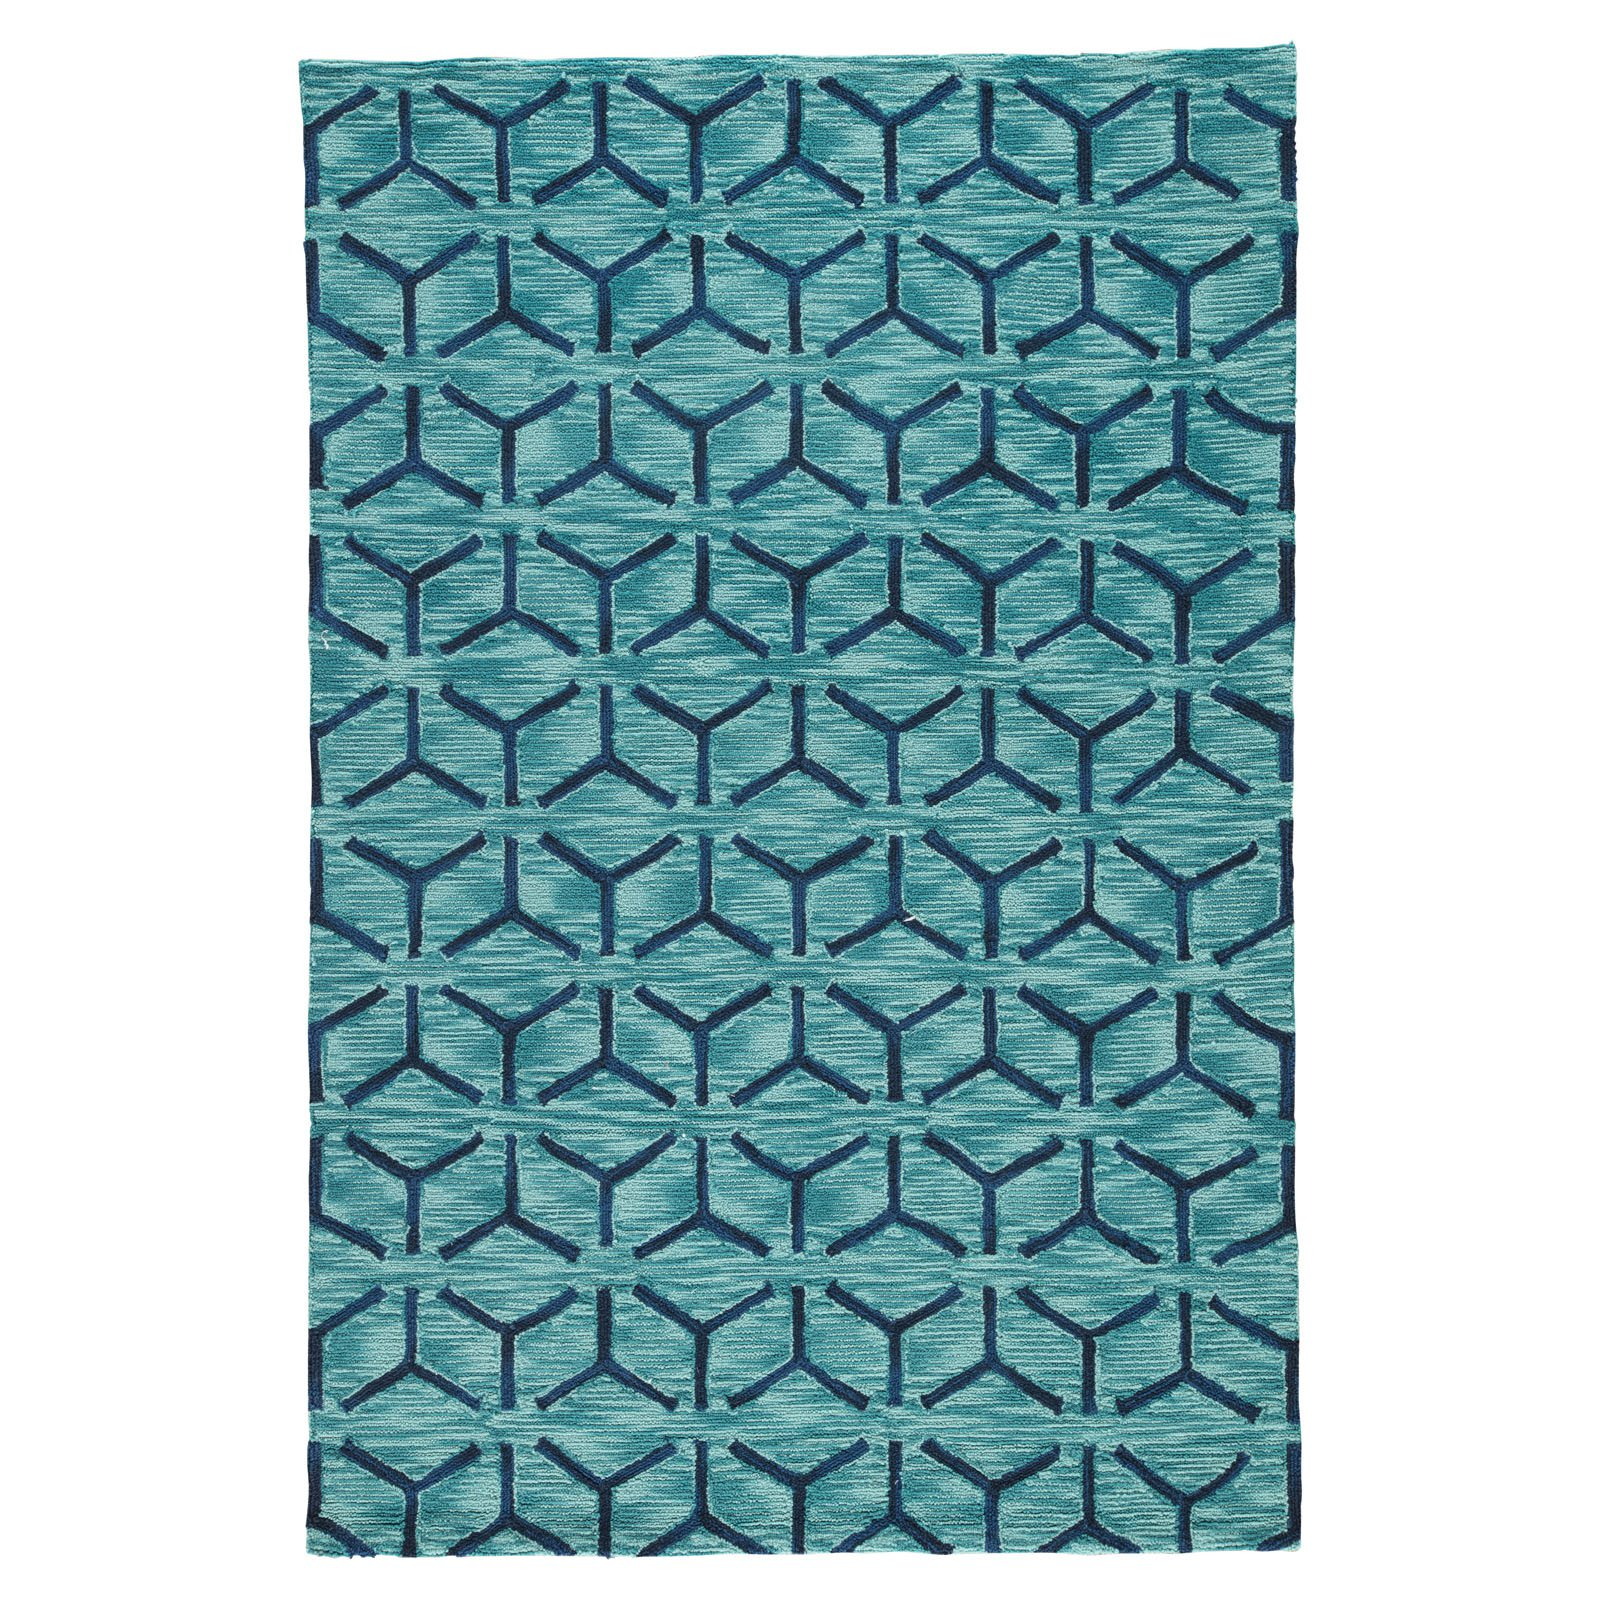 Jaipur Rugs Fusion Tribal Patterned Indoor Area Rug